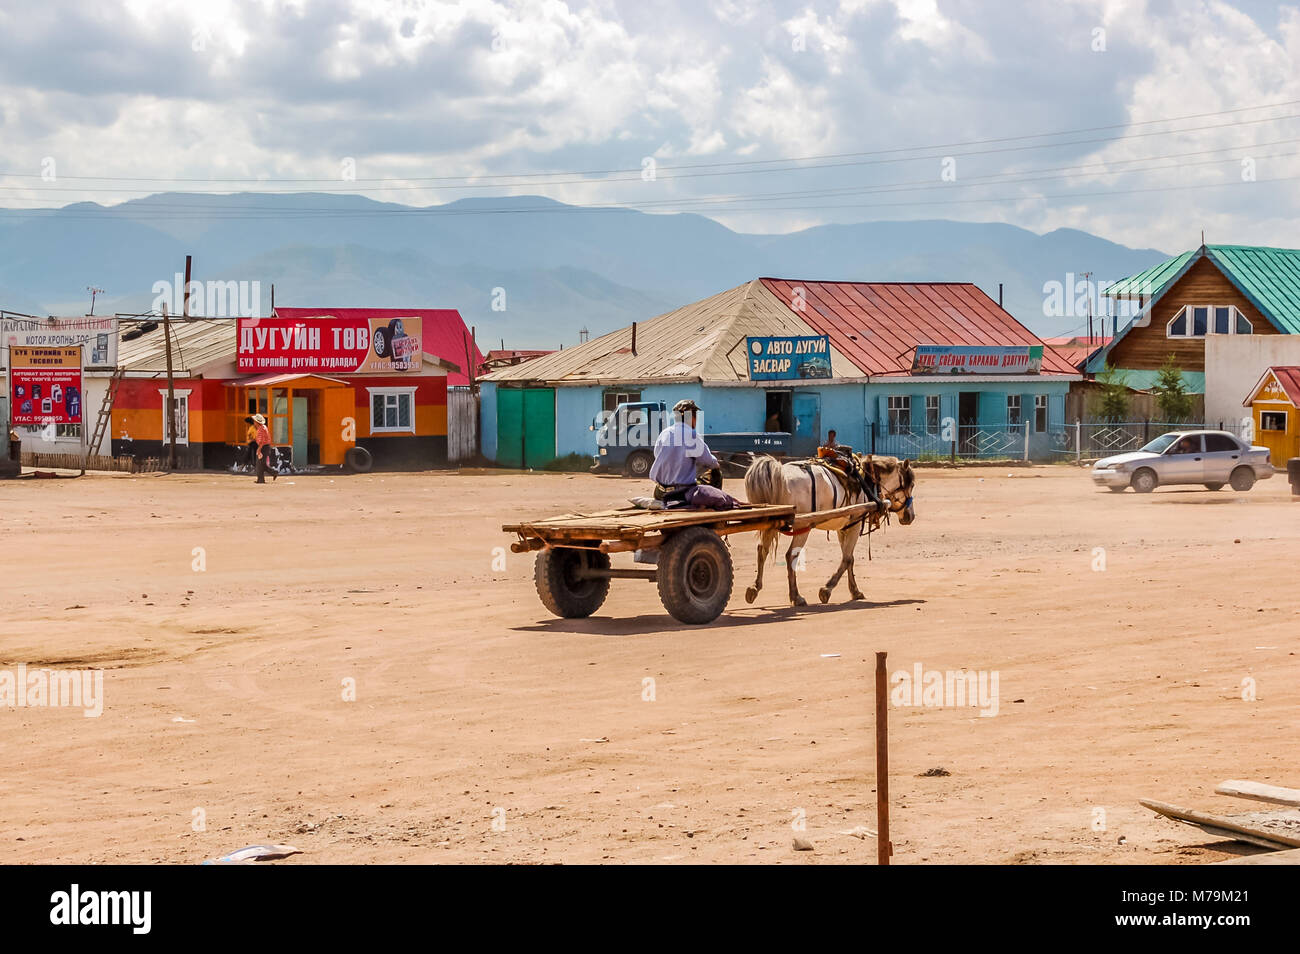 Shine-Ider District, Mongolia -  July 22, 2010: Local man drives horse & cart in tiny, remote community on steppe Stock Photo